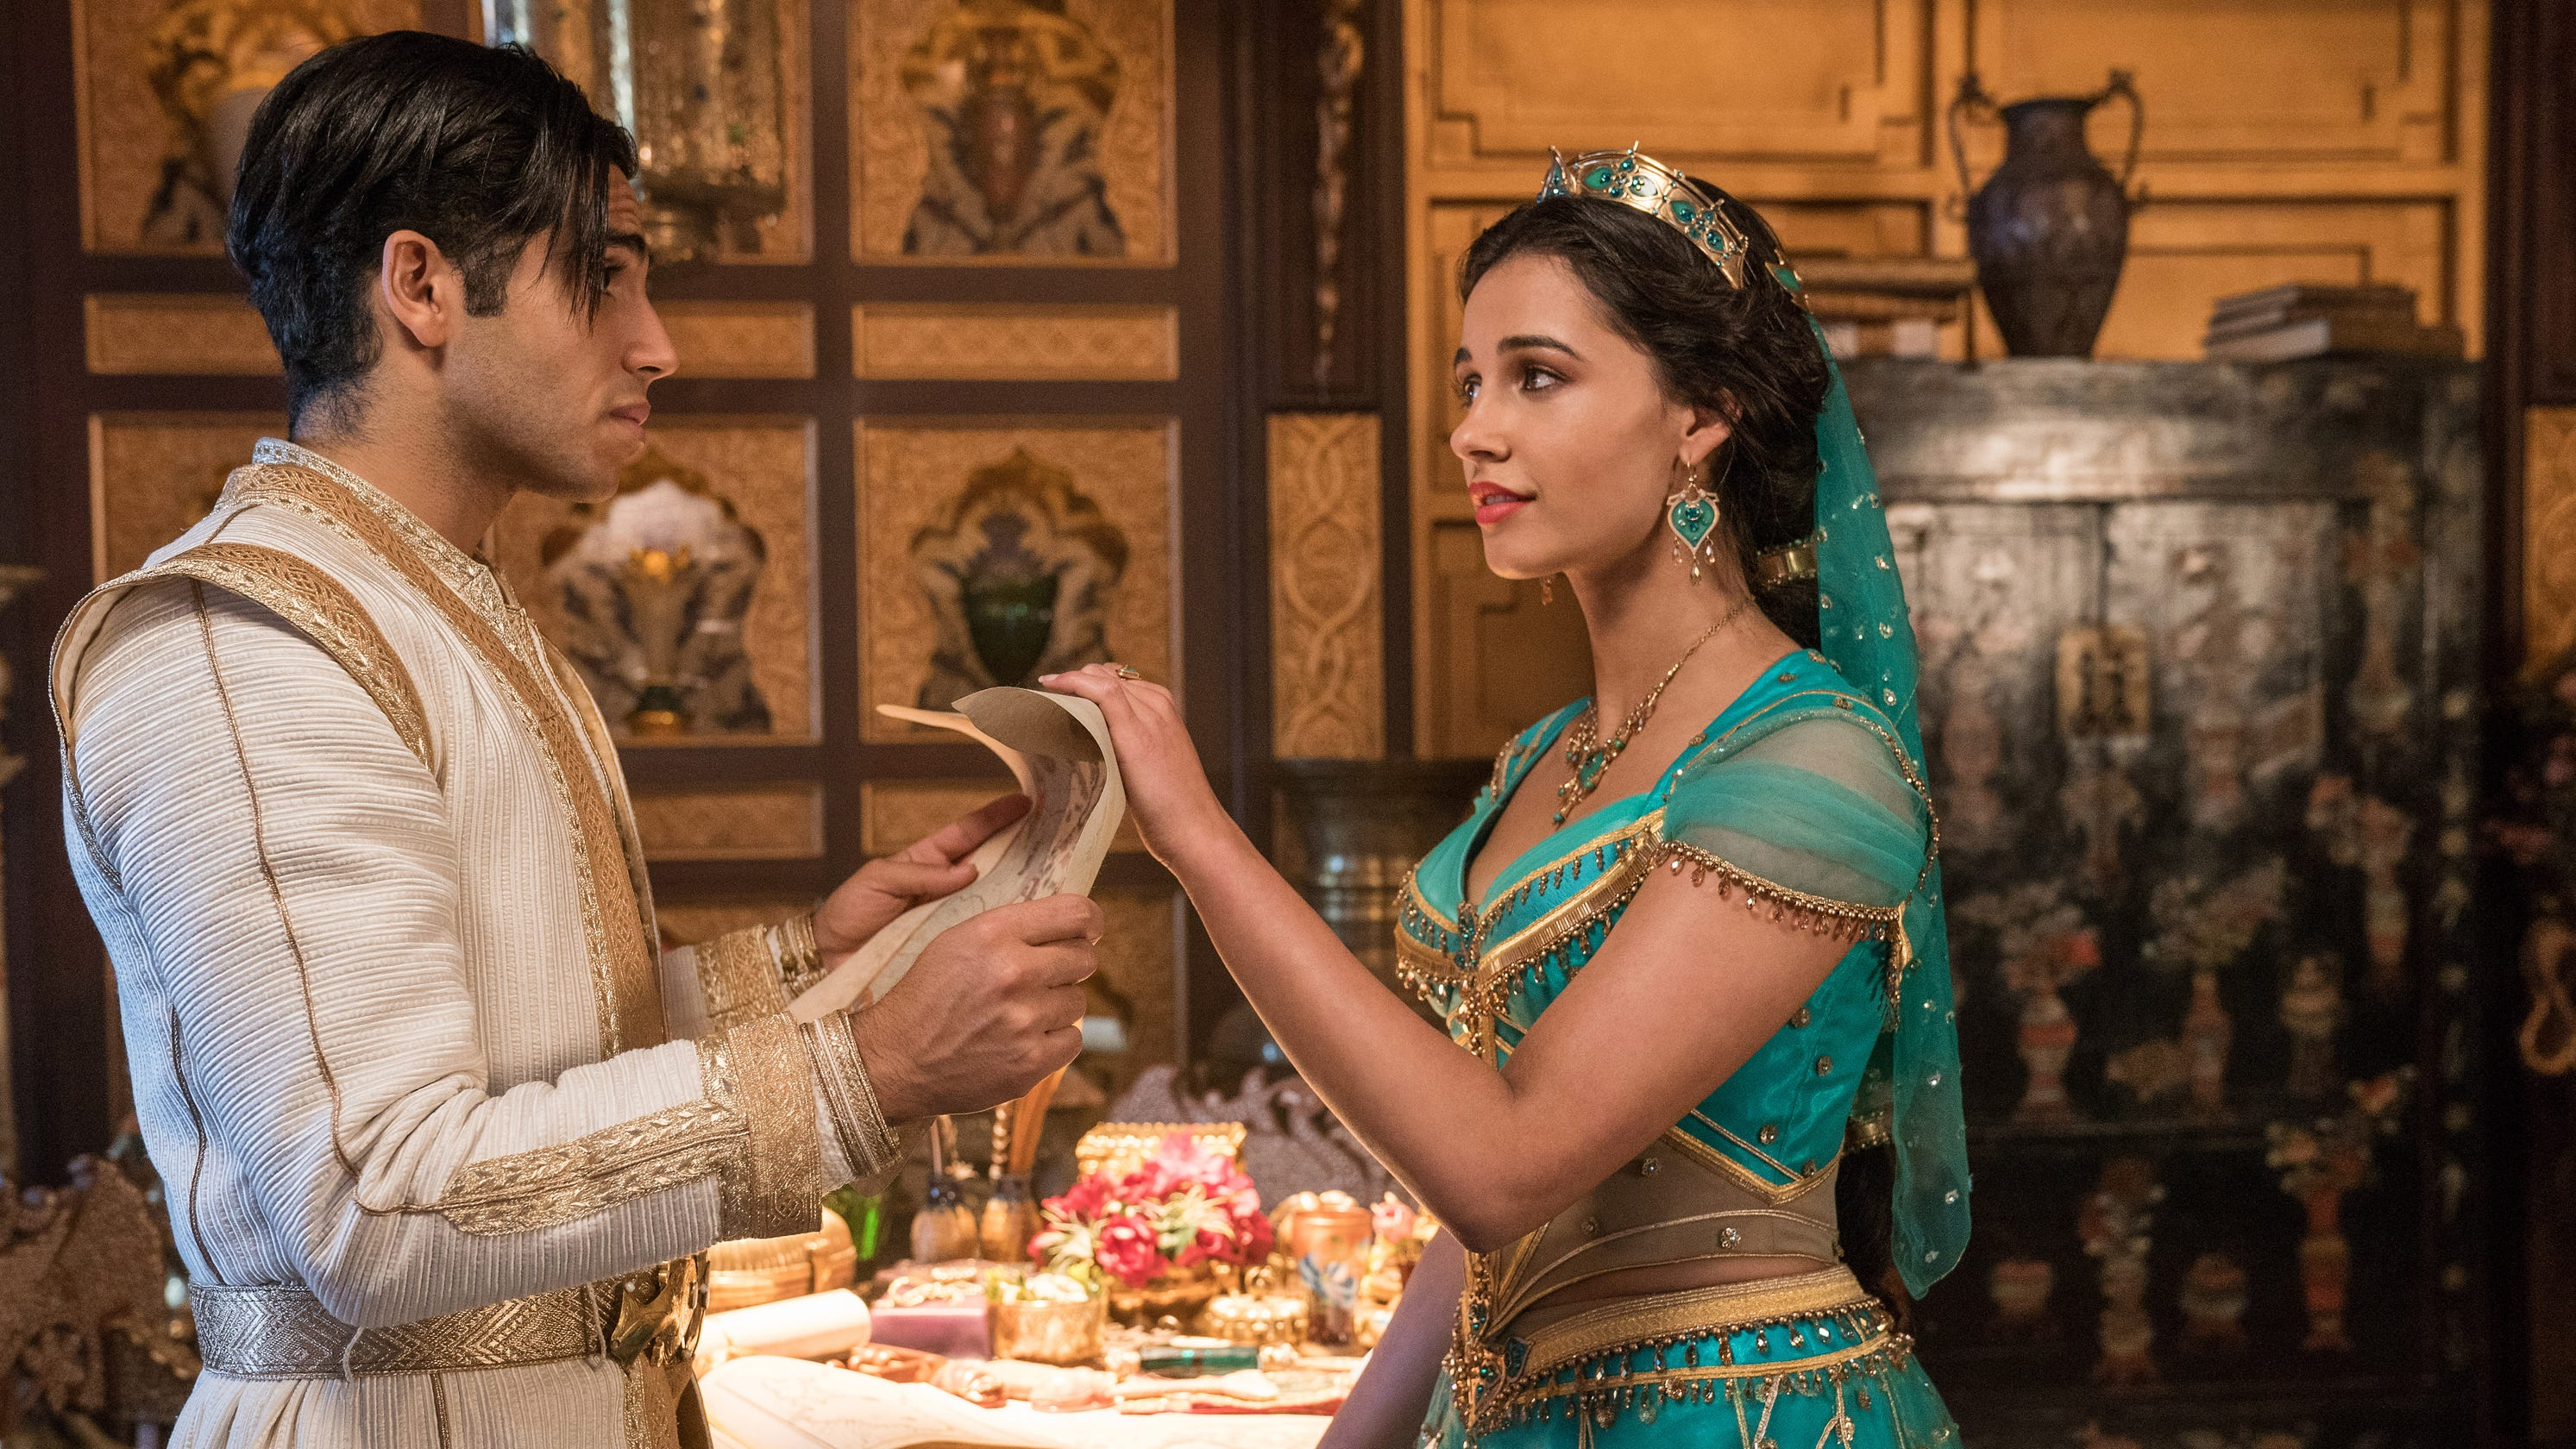 'Aladdin' rakes in riches: Will Smith's live-action Disney remake soars to $207.1M globally